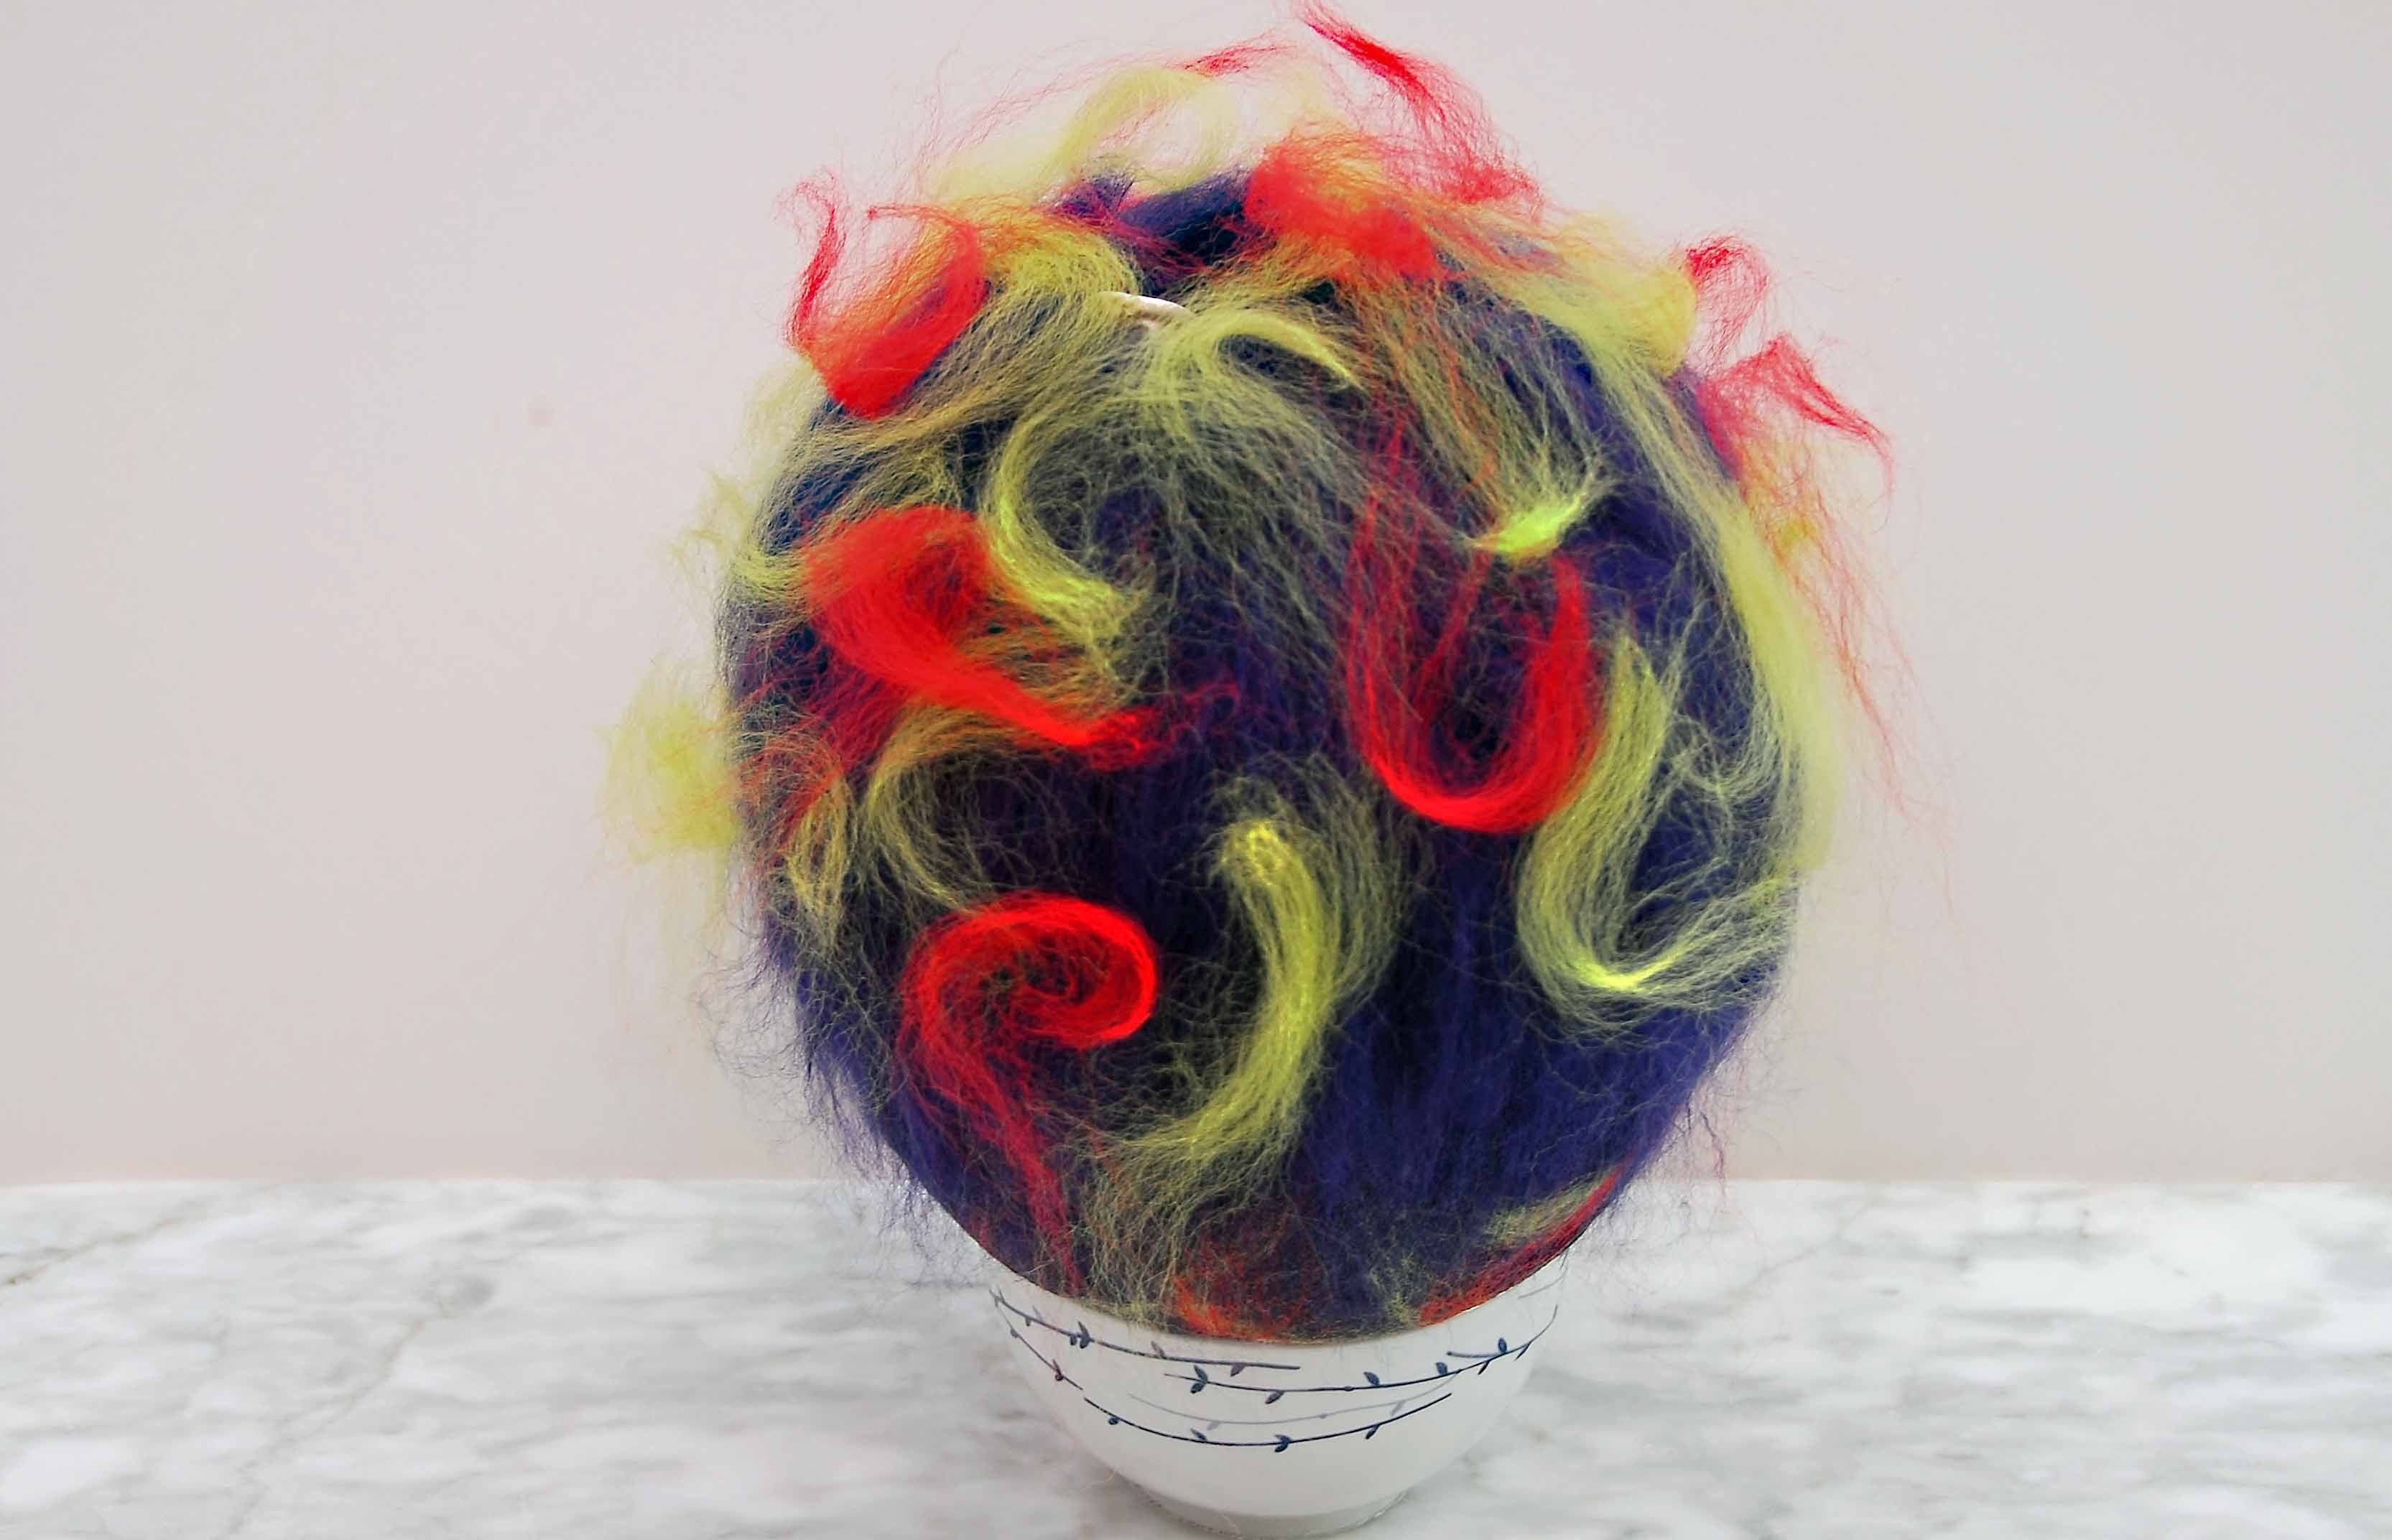 How to wet felt a bird pod felting tutorials tumble dryers and this free wet felting tutorial makes use of a balloon a tumble dryer and merino wool roving to produce a delightful bird pod for display or use in your baditri Images